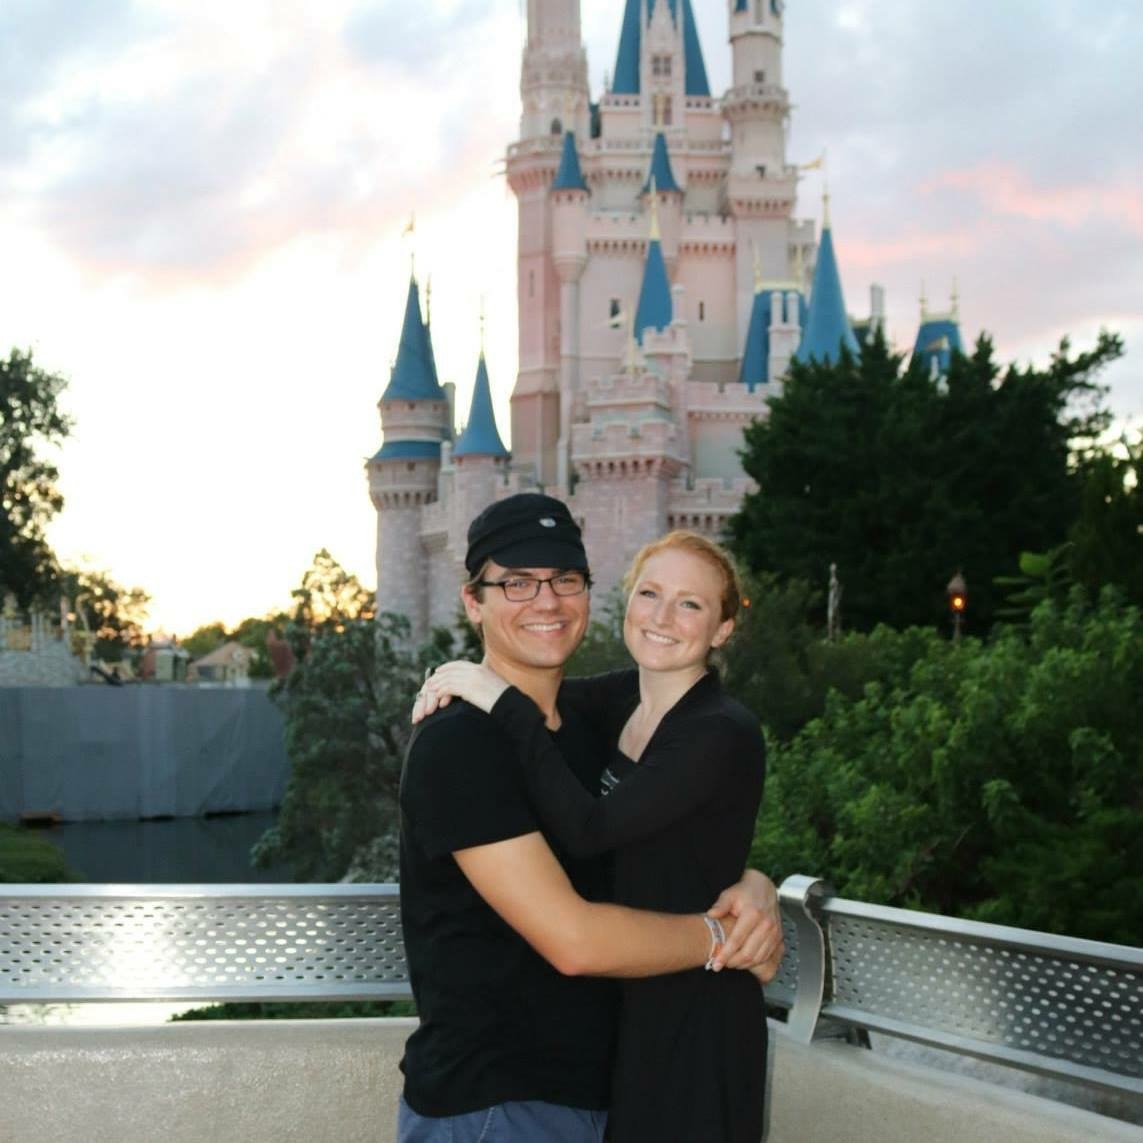 the most magical Disney castle couple shot